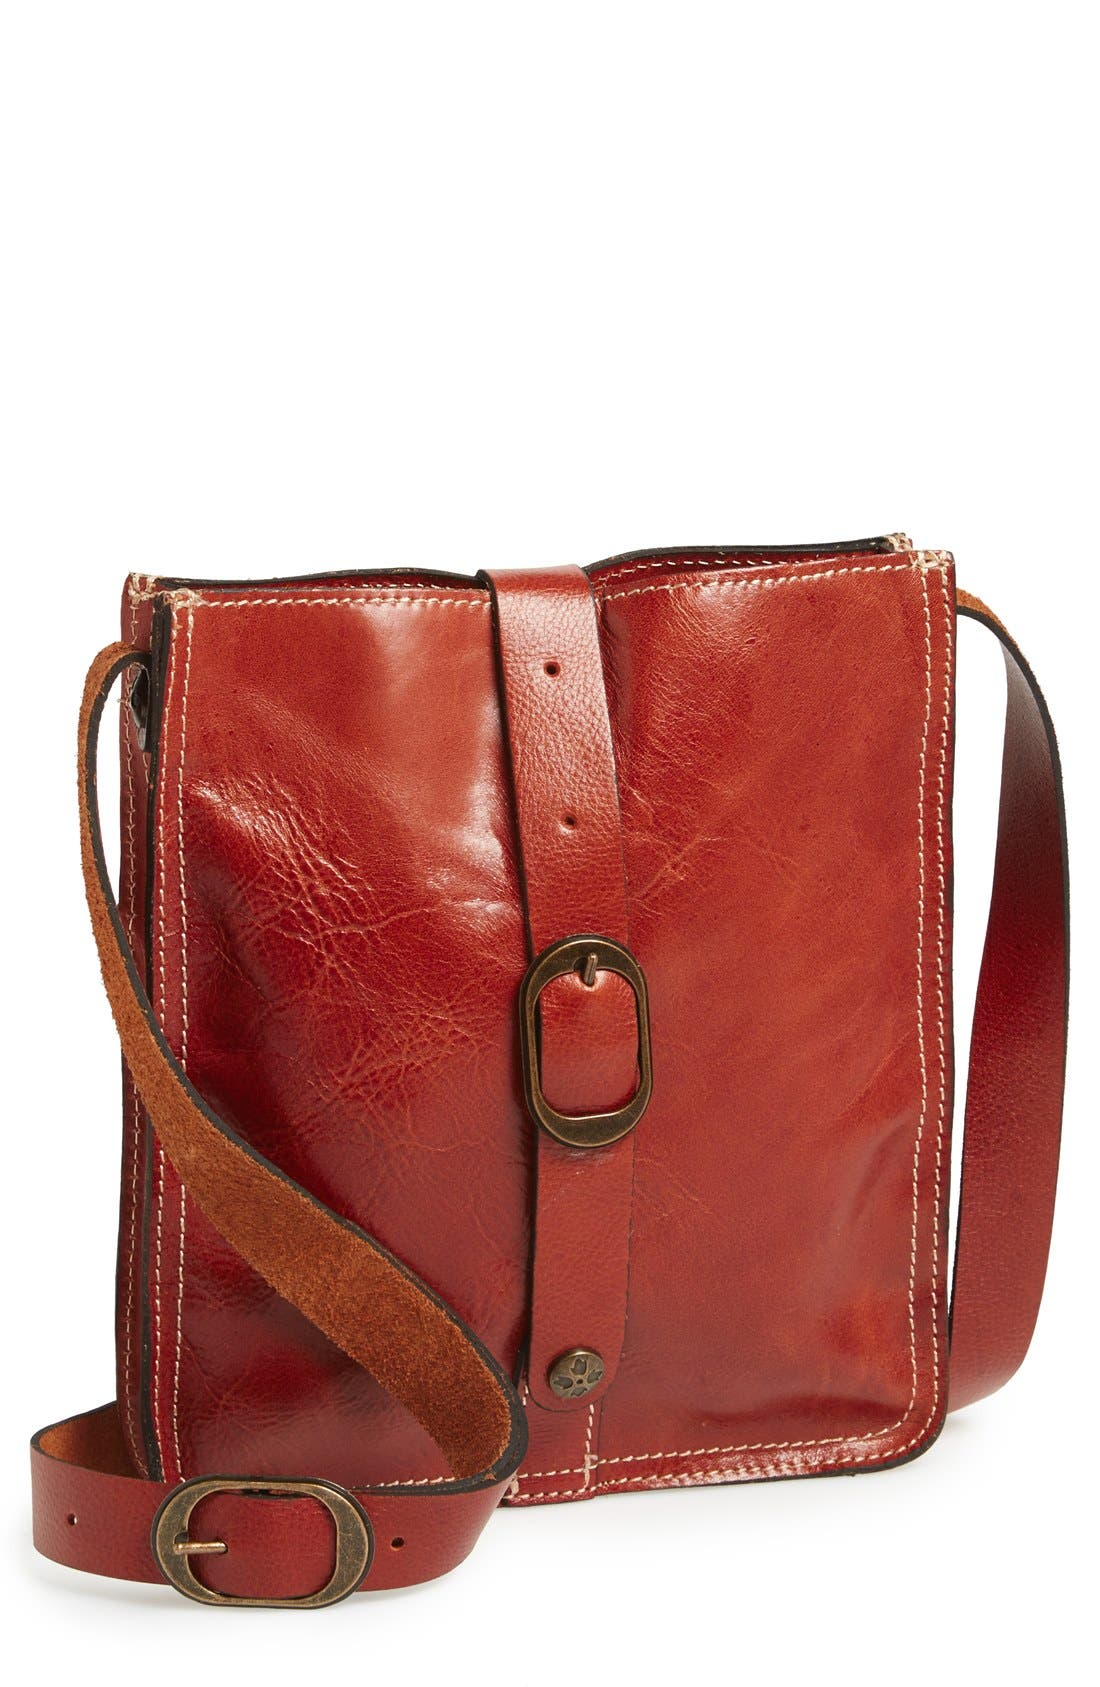 Alternate Image 1 Selected - Patricia Nash 'Venezia' Crossbody Bag